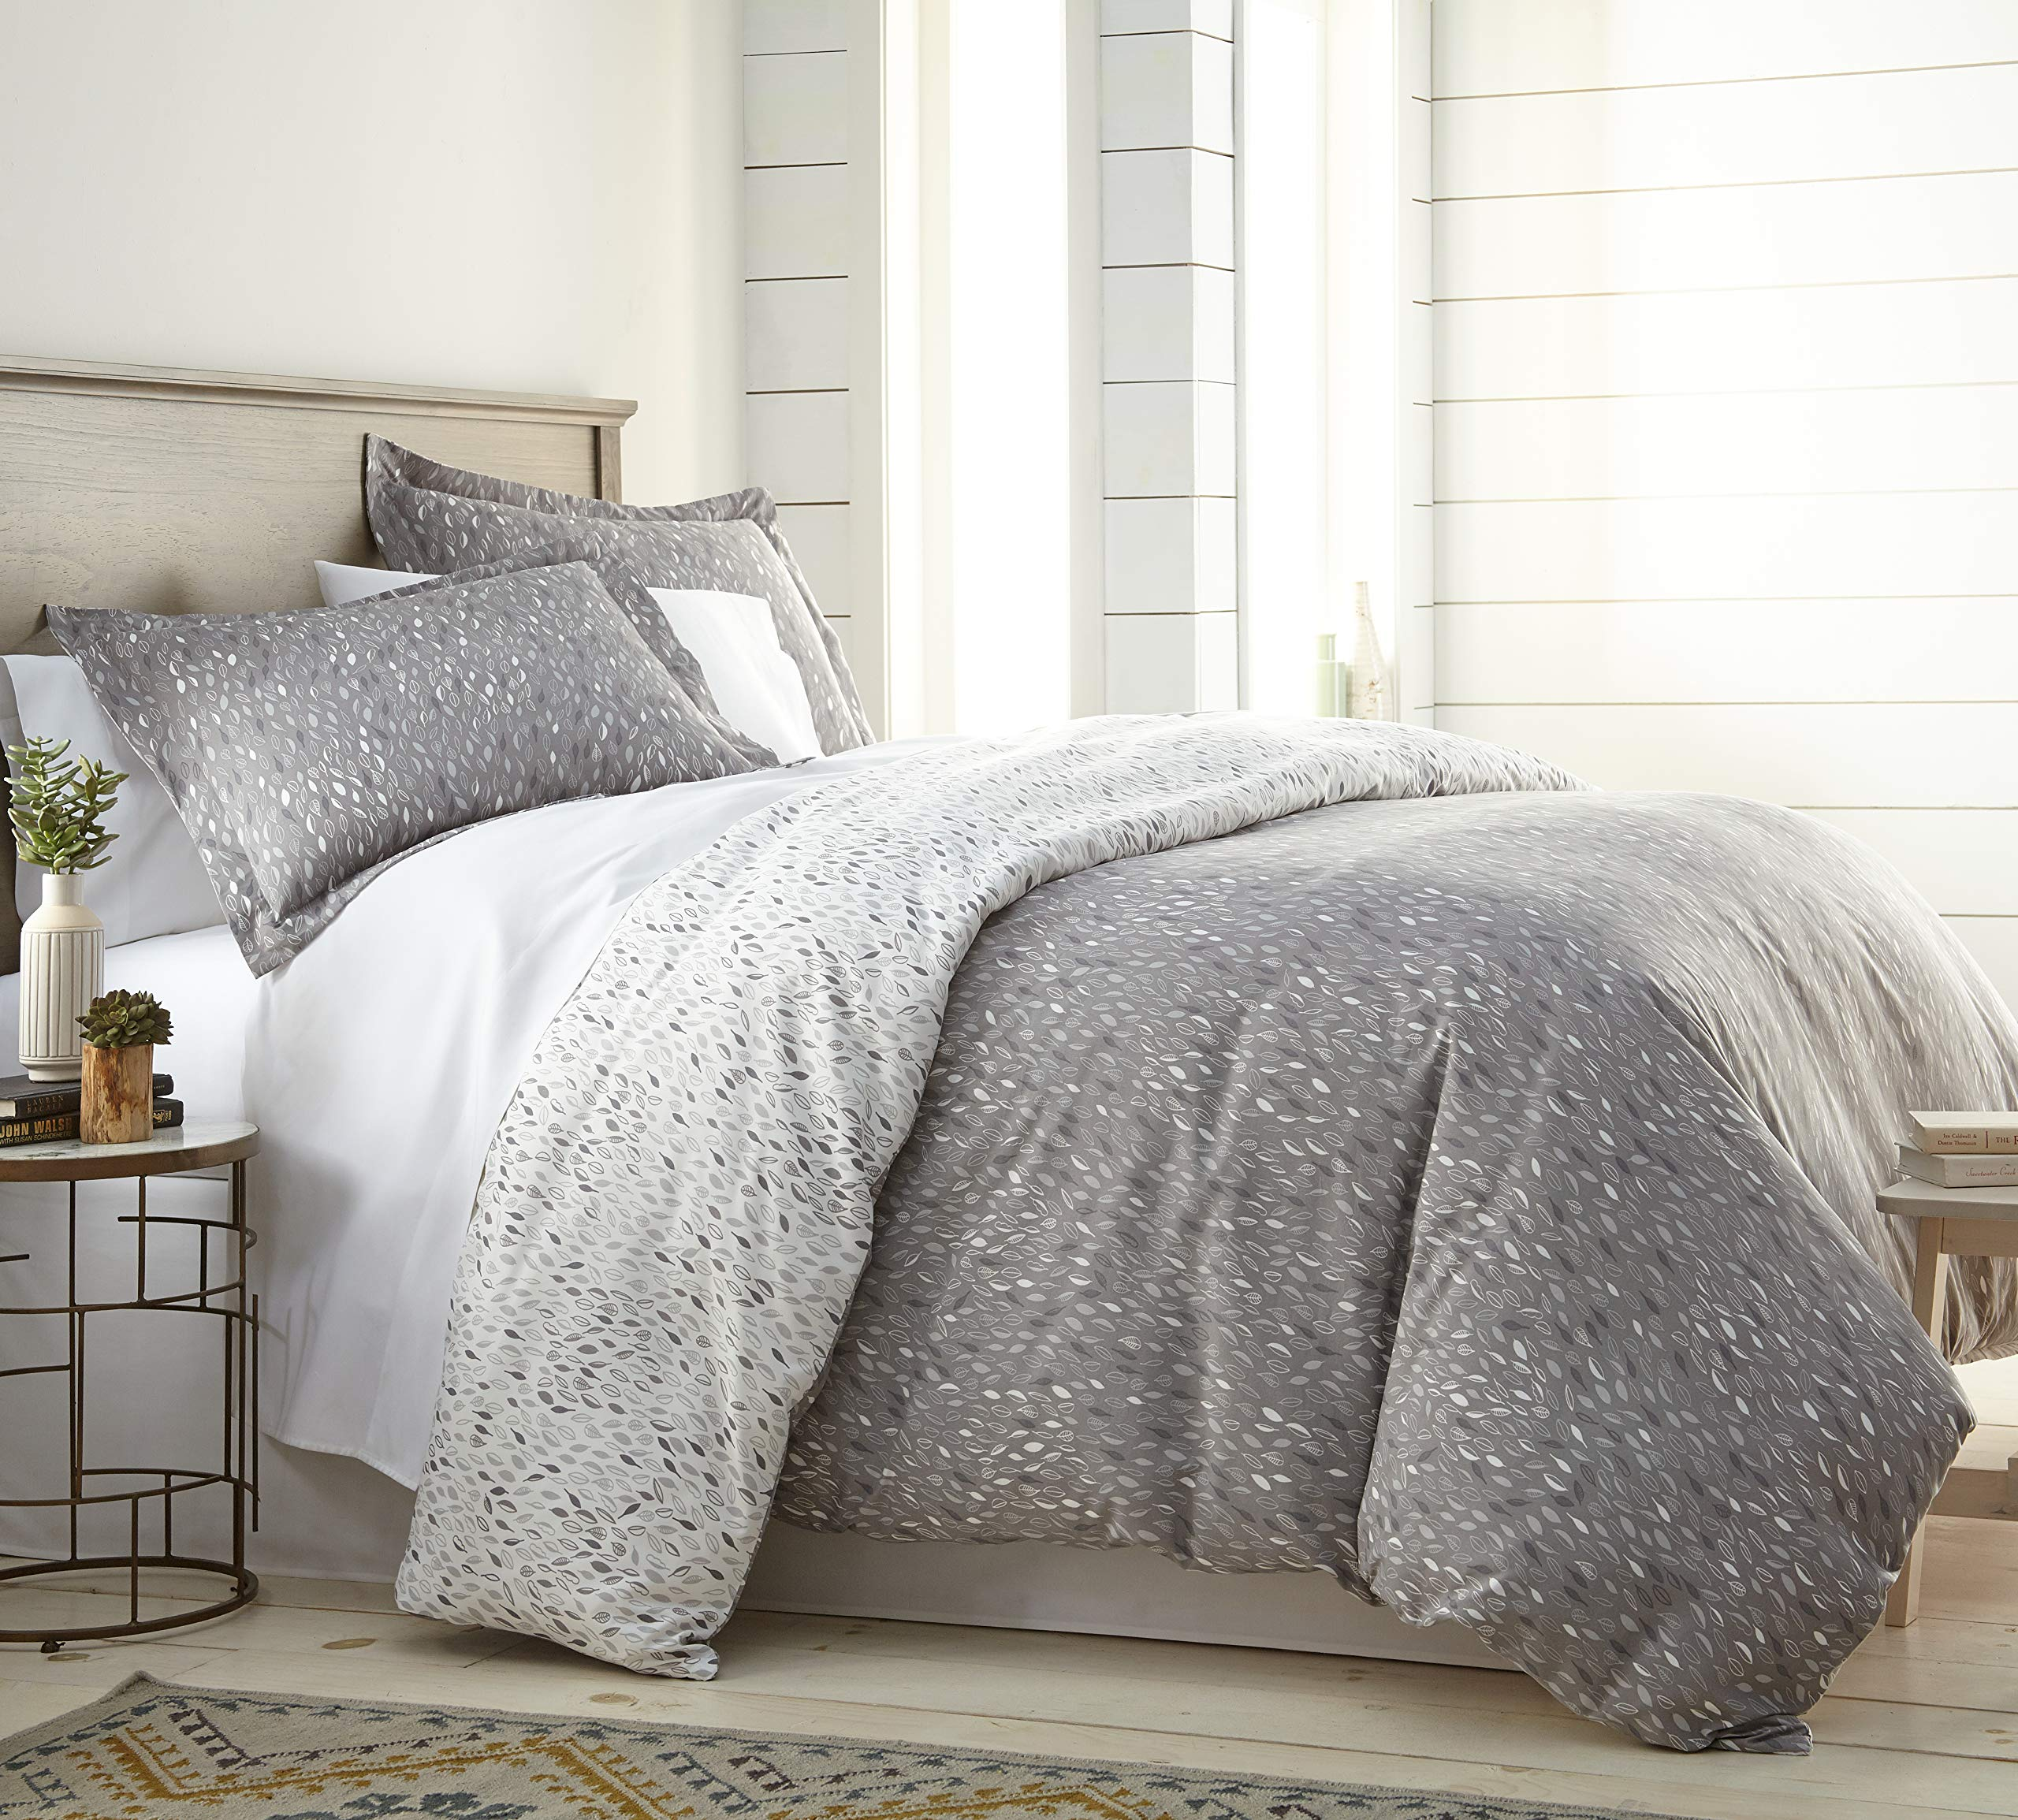 Southshore Fine Living, Inc. The Vilano Choice Collection 2-Piece Reversable Printed Duvet Cover Set, Twin/Twin XL, Botanical Leaves Grey